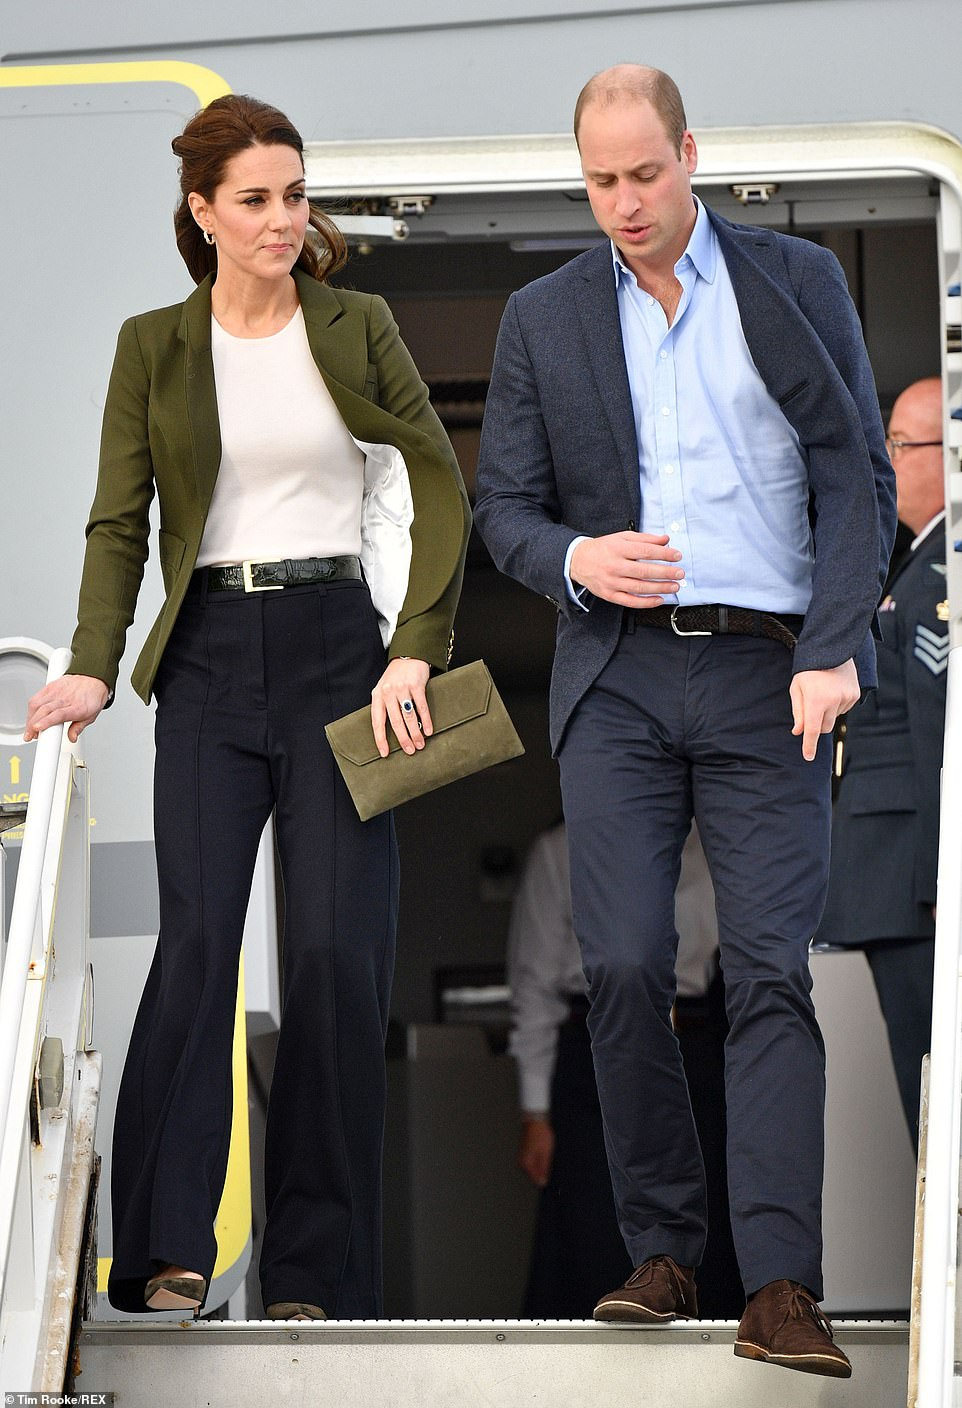 The Duchess looked impeccably co ordinated matching her khaki suede clutch bag and shoes to her blazer